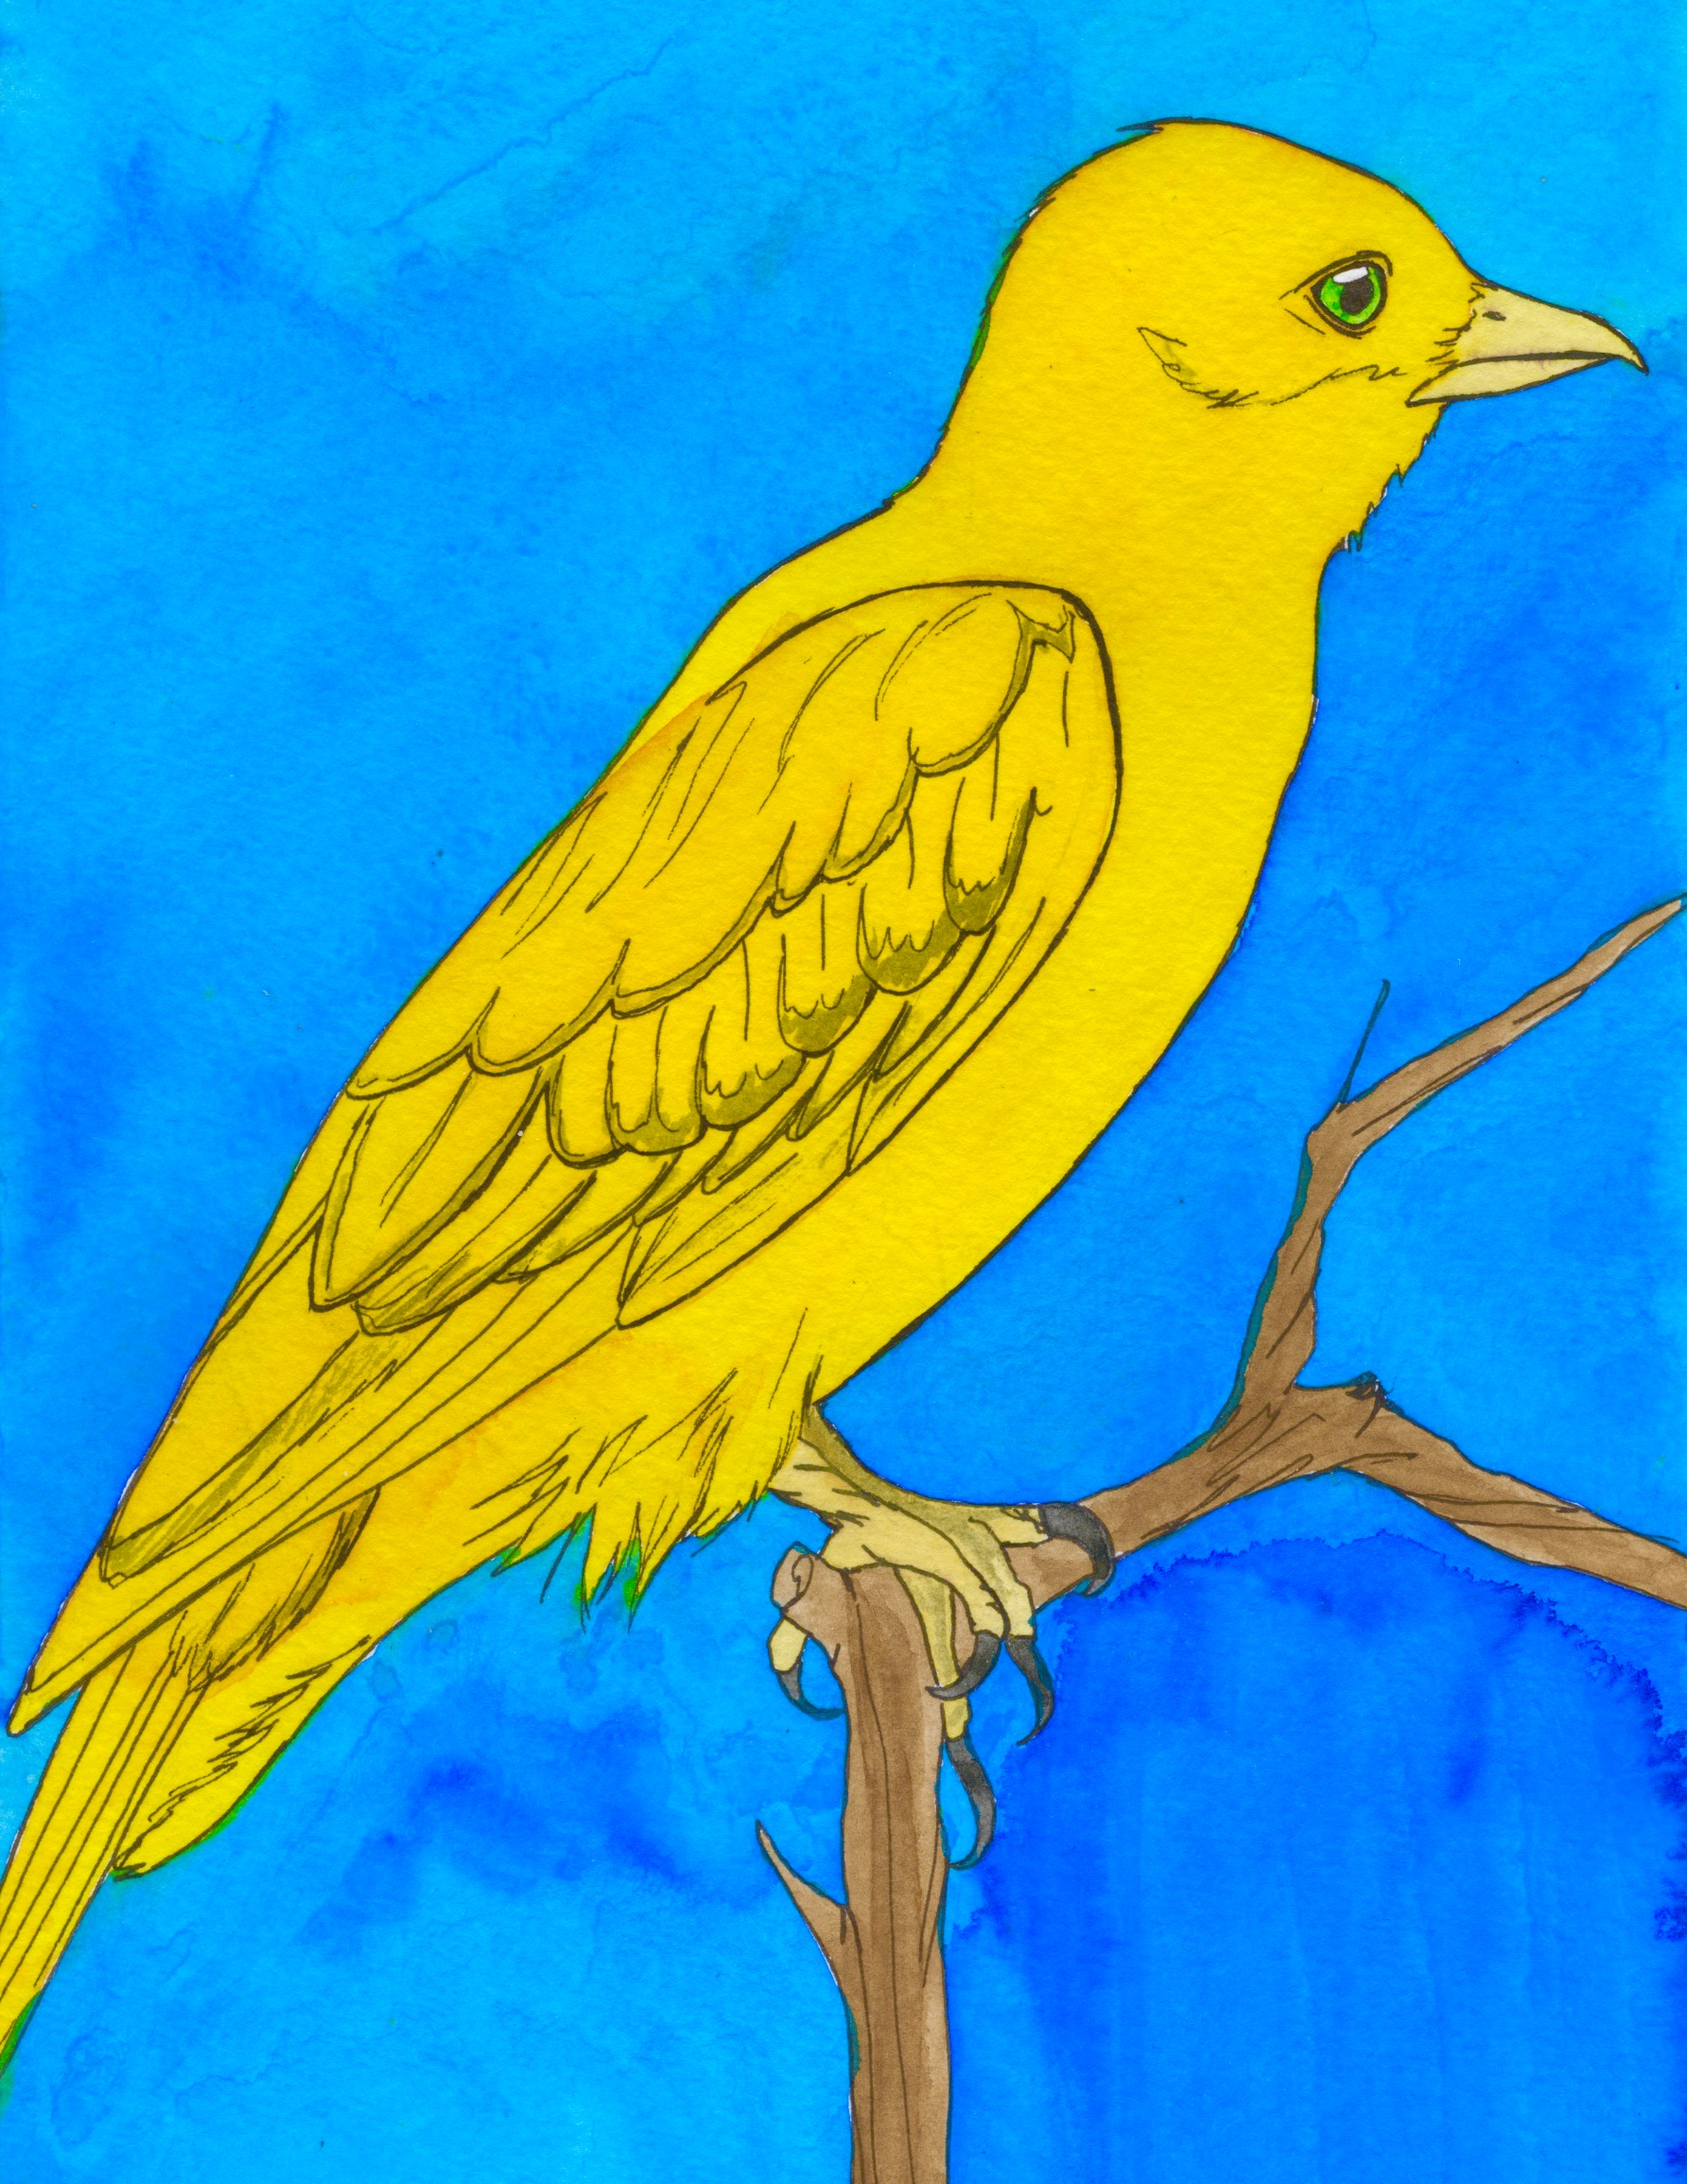 El Pajaro, from LOTERIA series